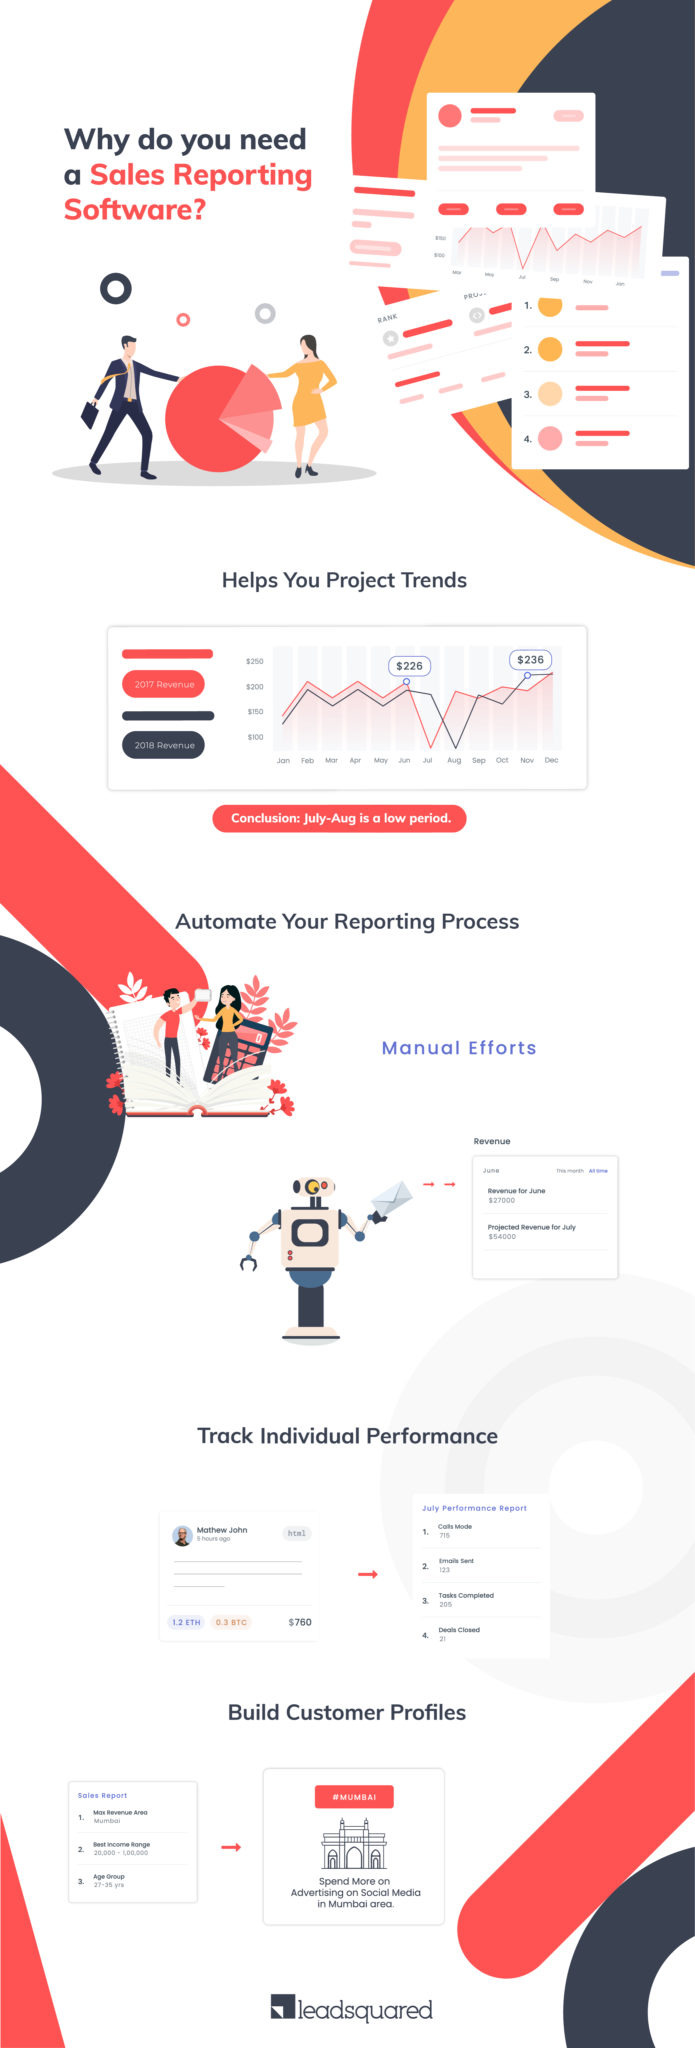 Sales Reporting Software - infographic